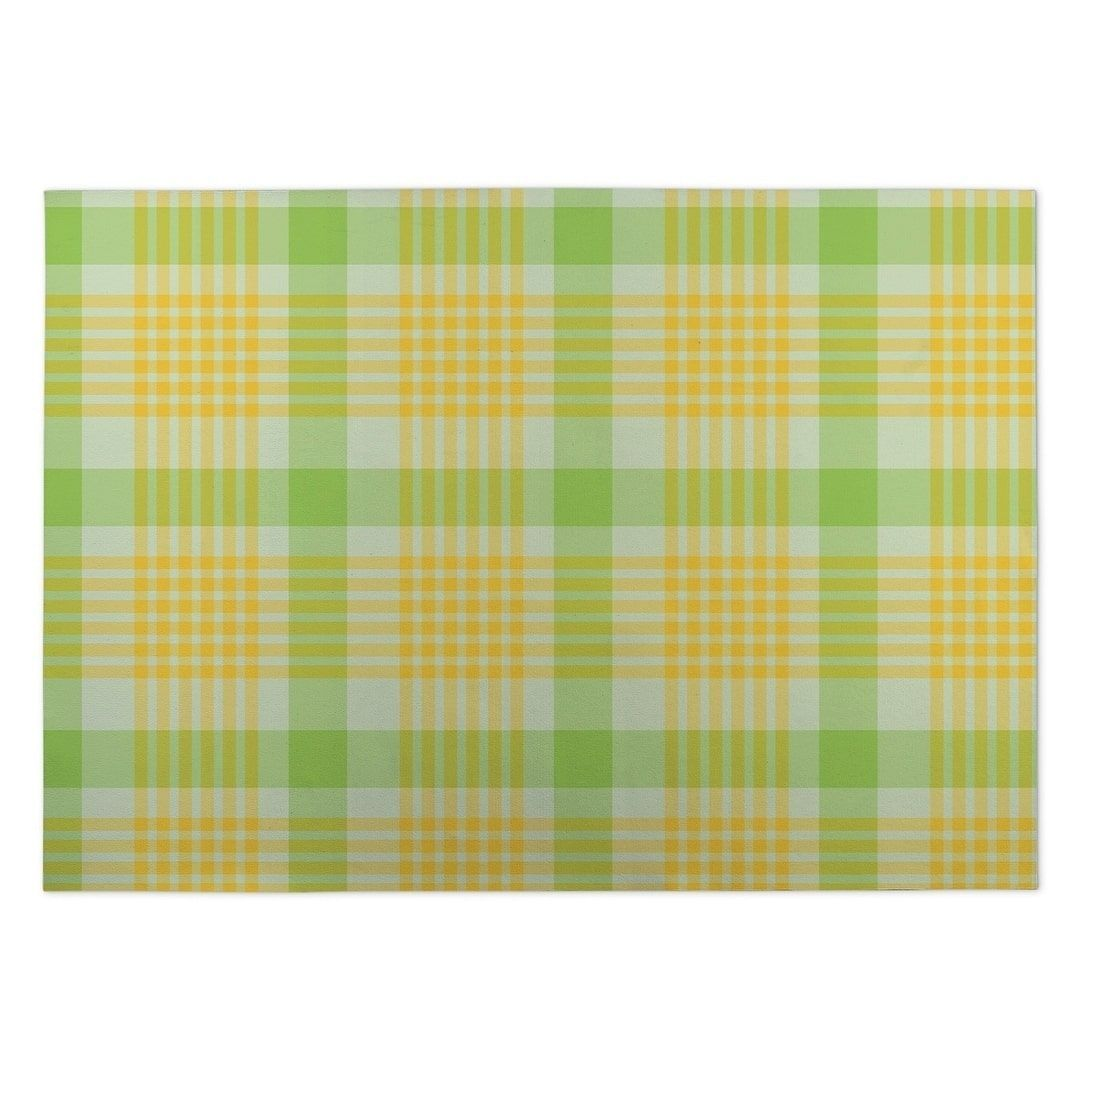 Kavka Designs Green/Yellow Floral Plaid Indoor/Outdoor